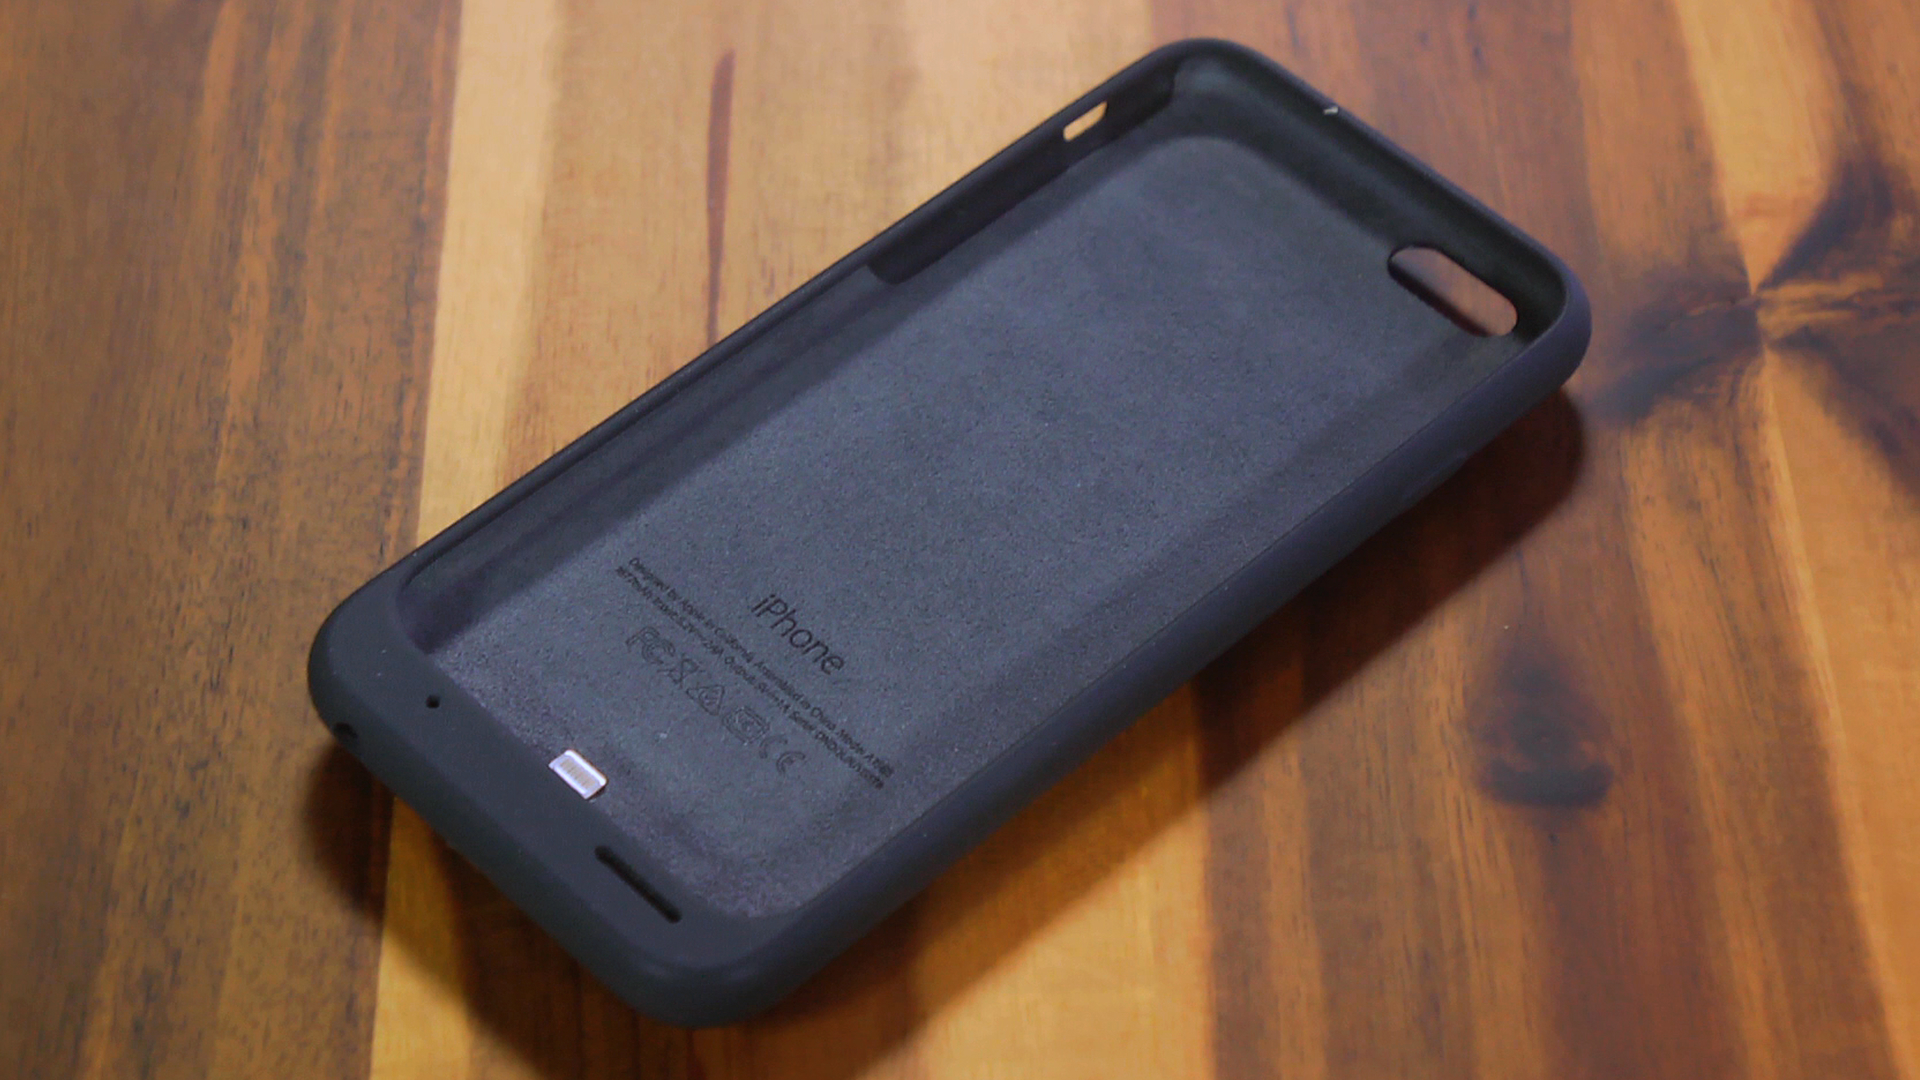 Video: Apple's Smart Battery Case is an answer to iPhone 6 and 6S low-battery woes